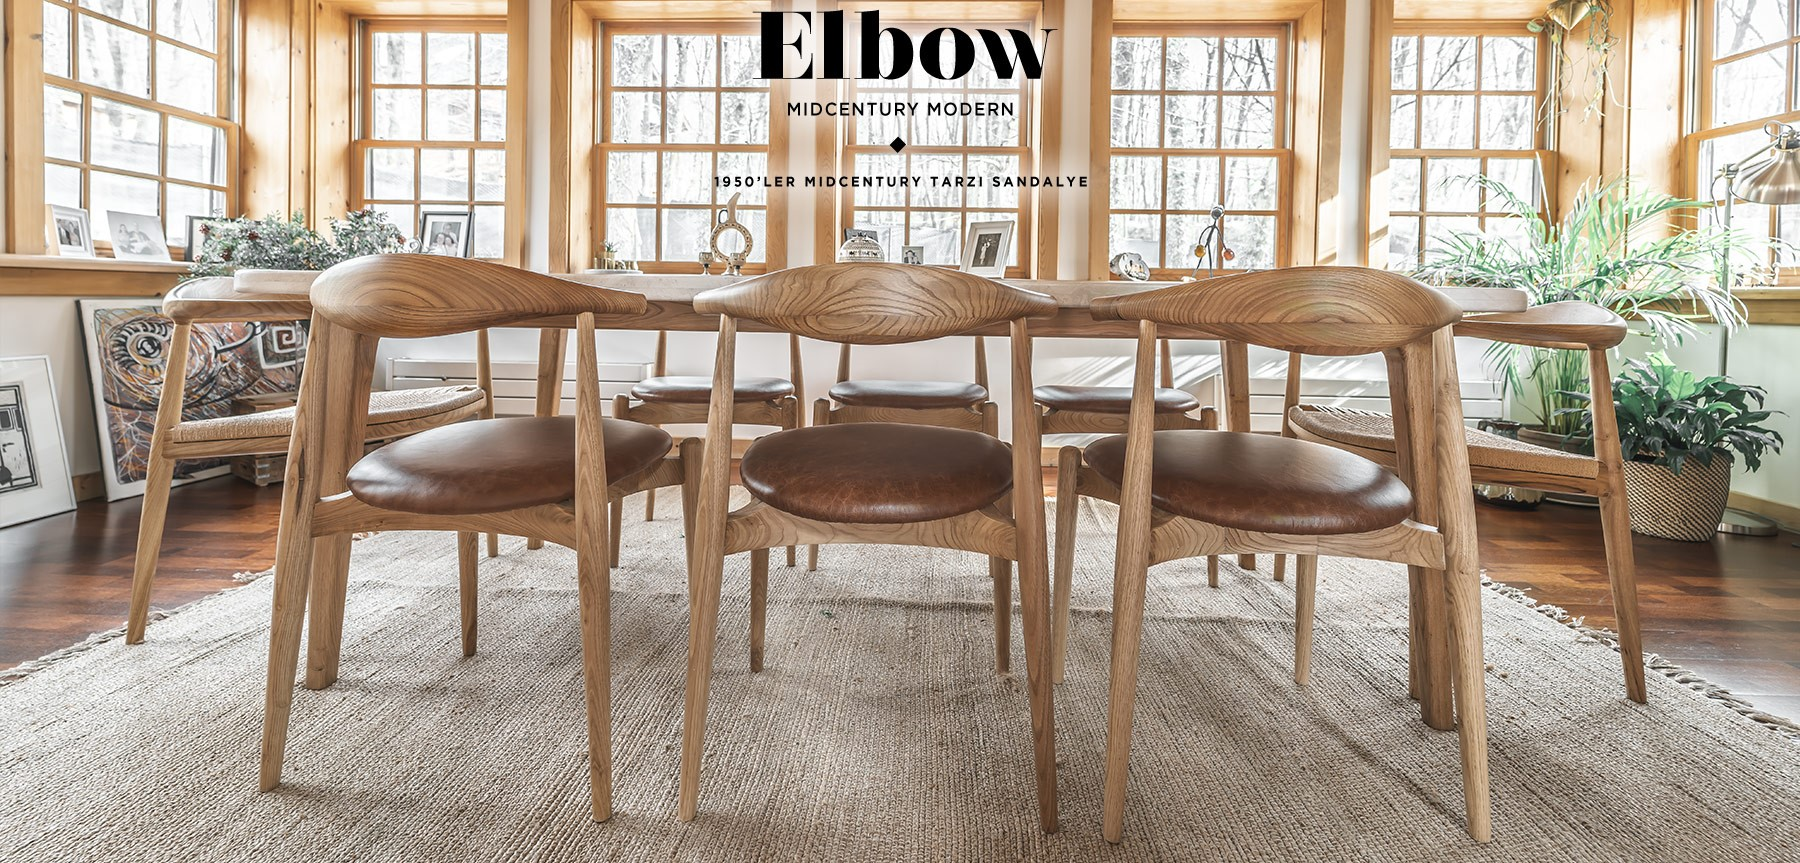 CH20 Elbow Chair Sandalye'in resmi